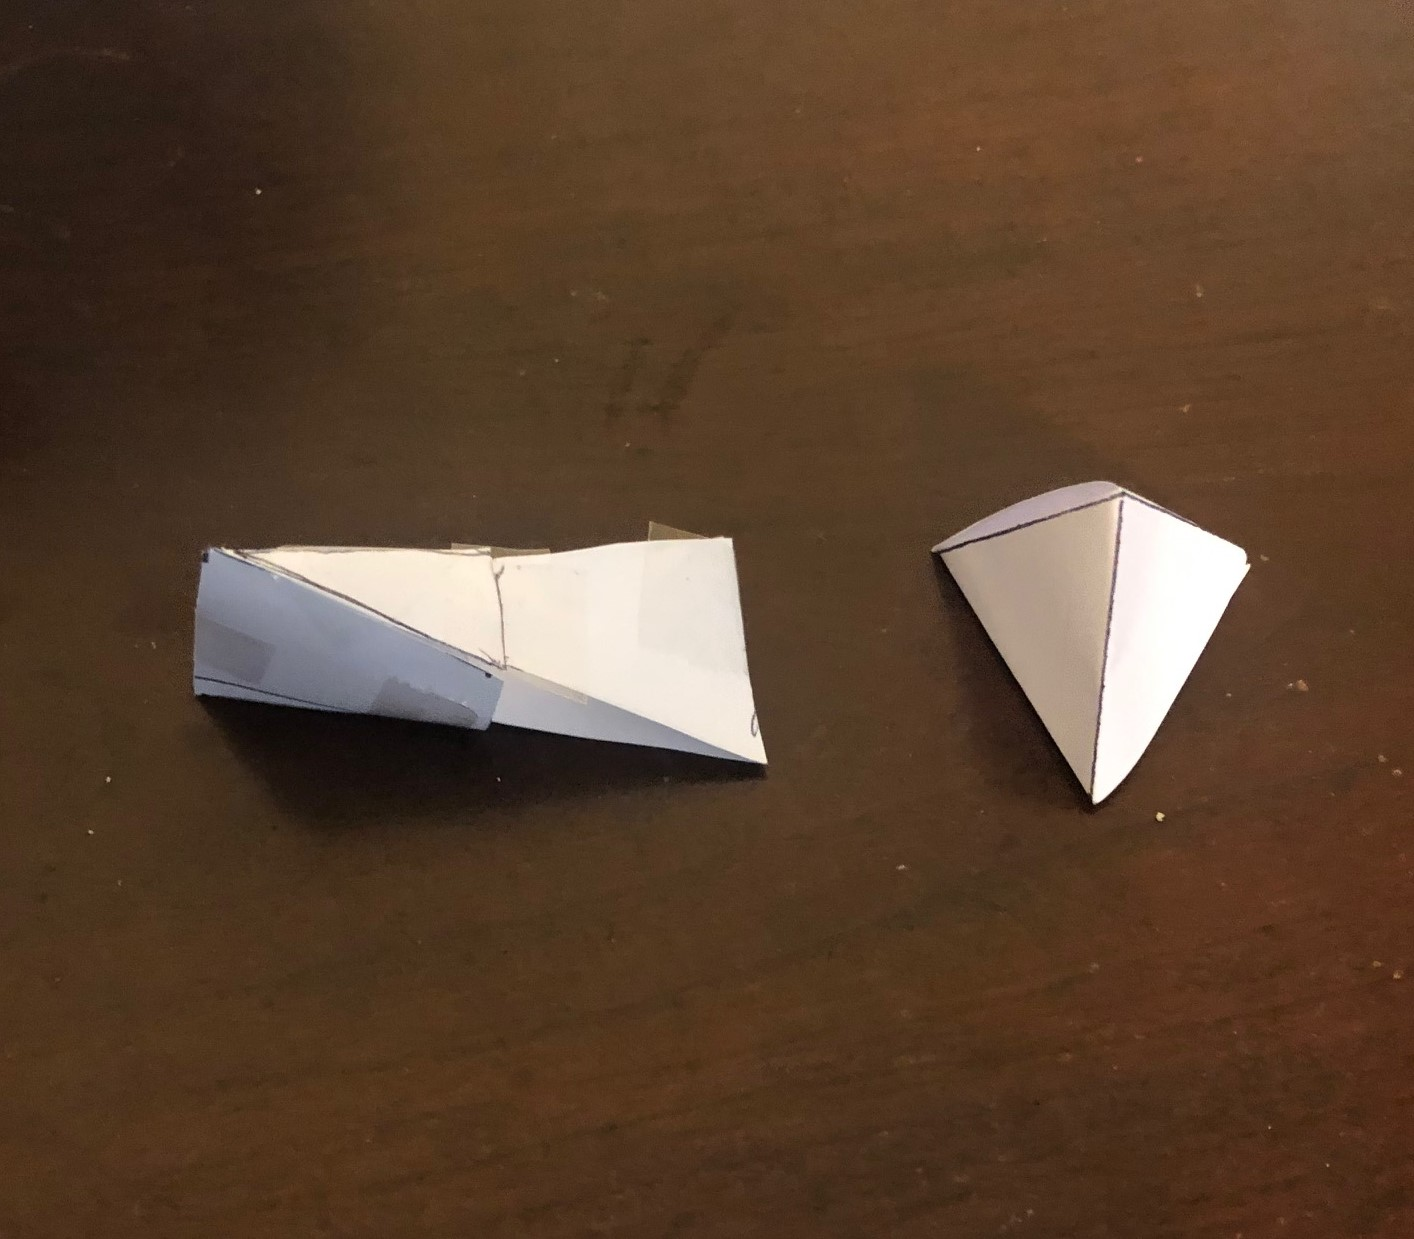 paper models of tetrahedra